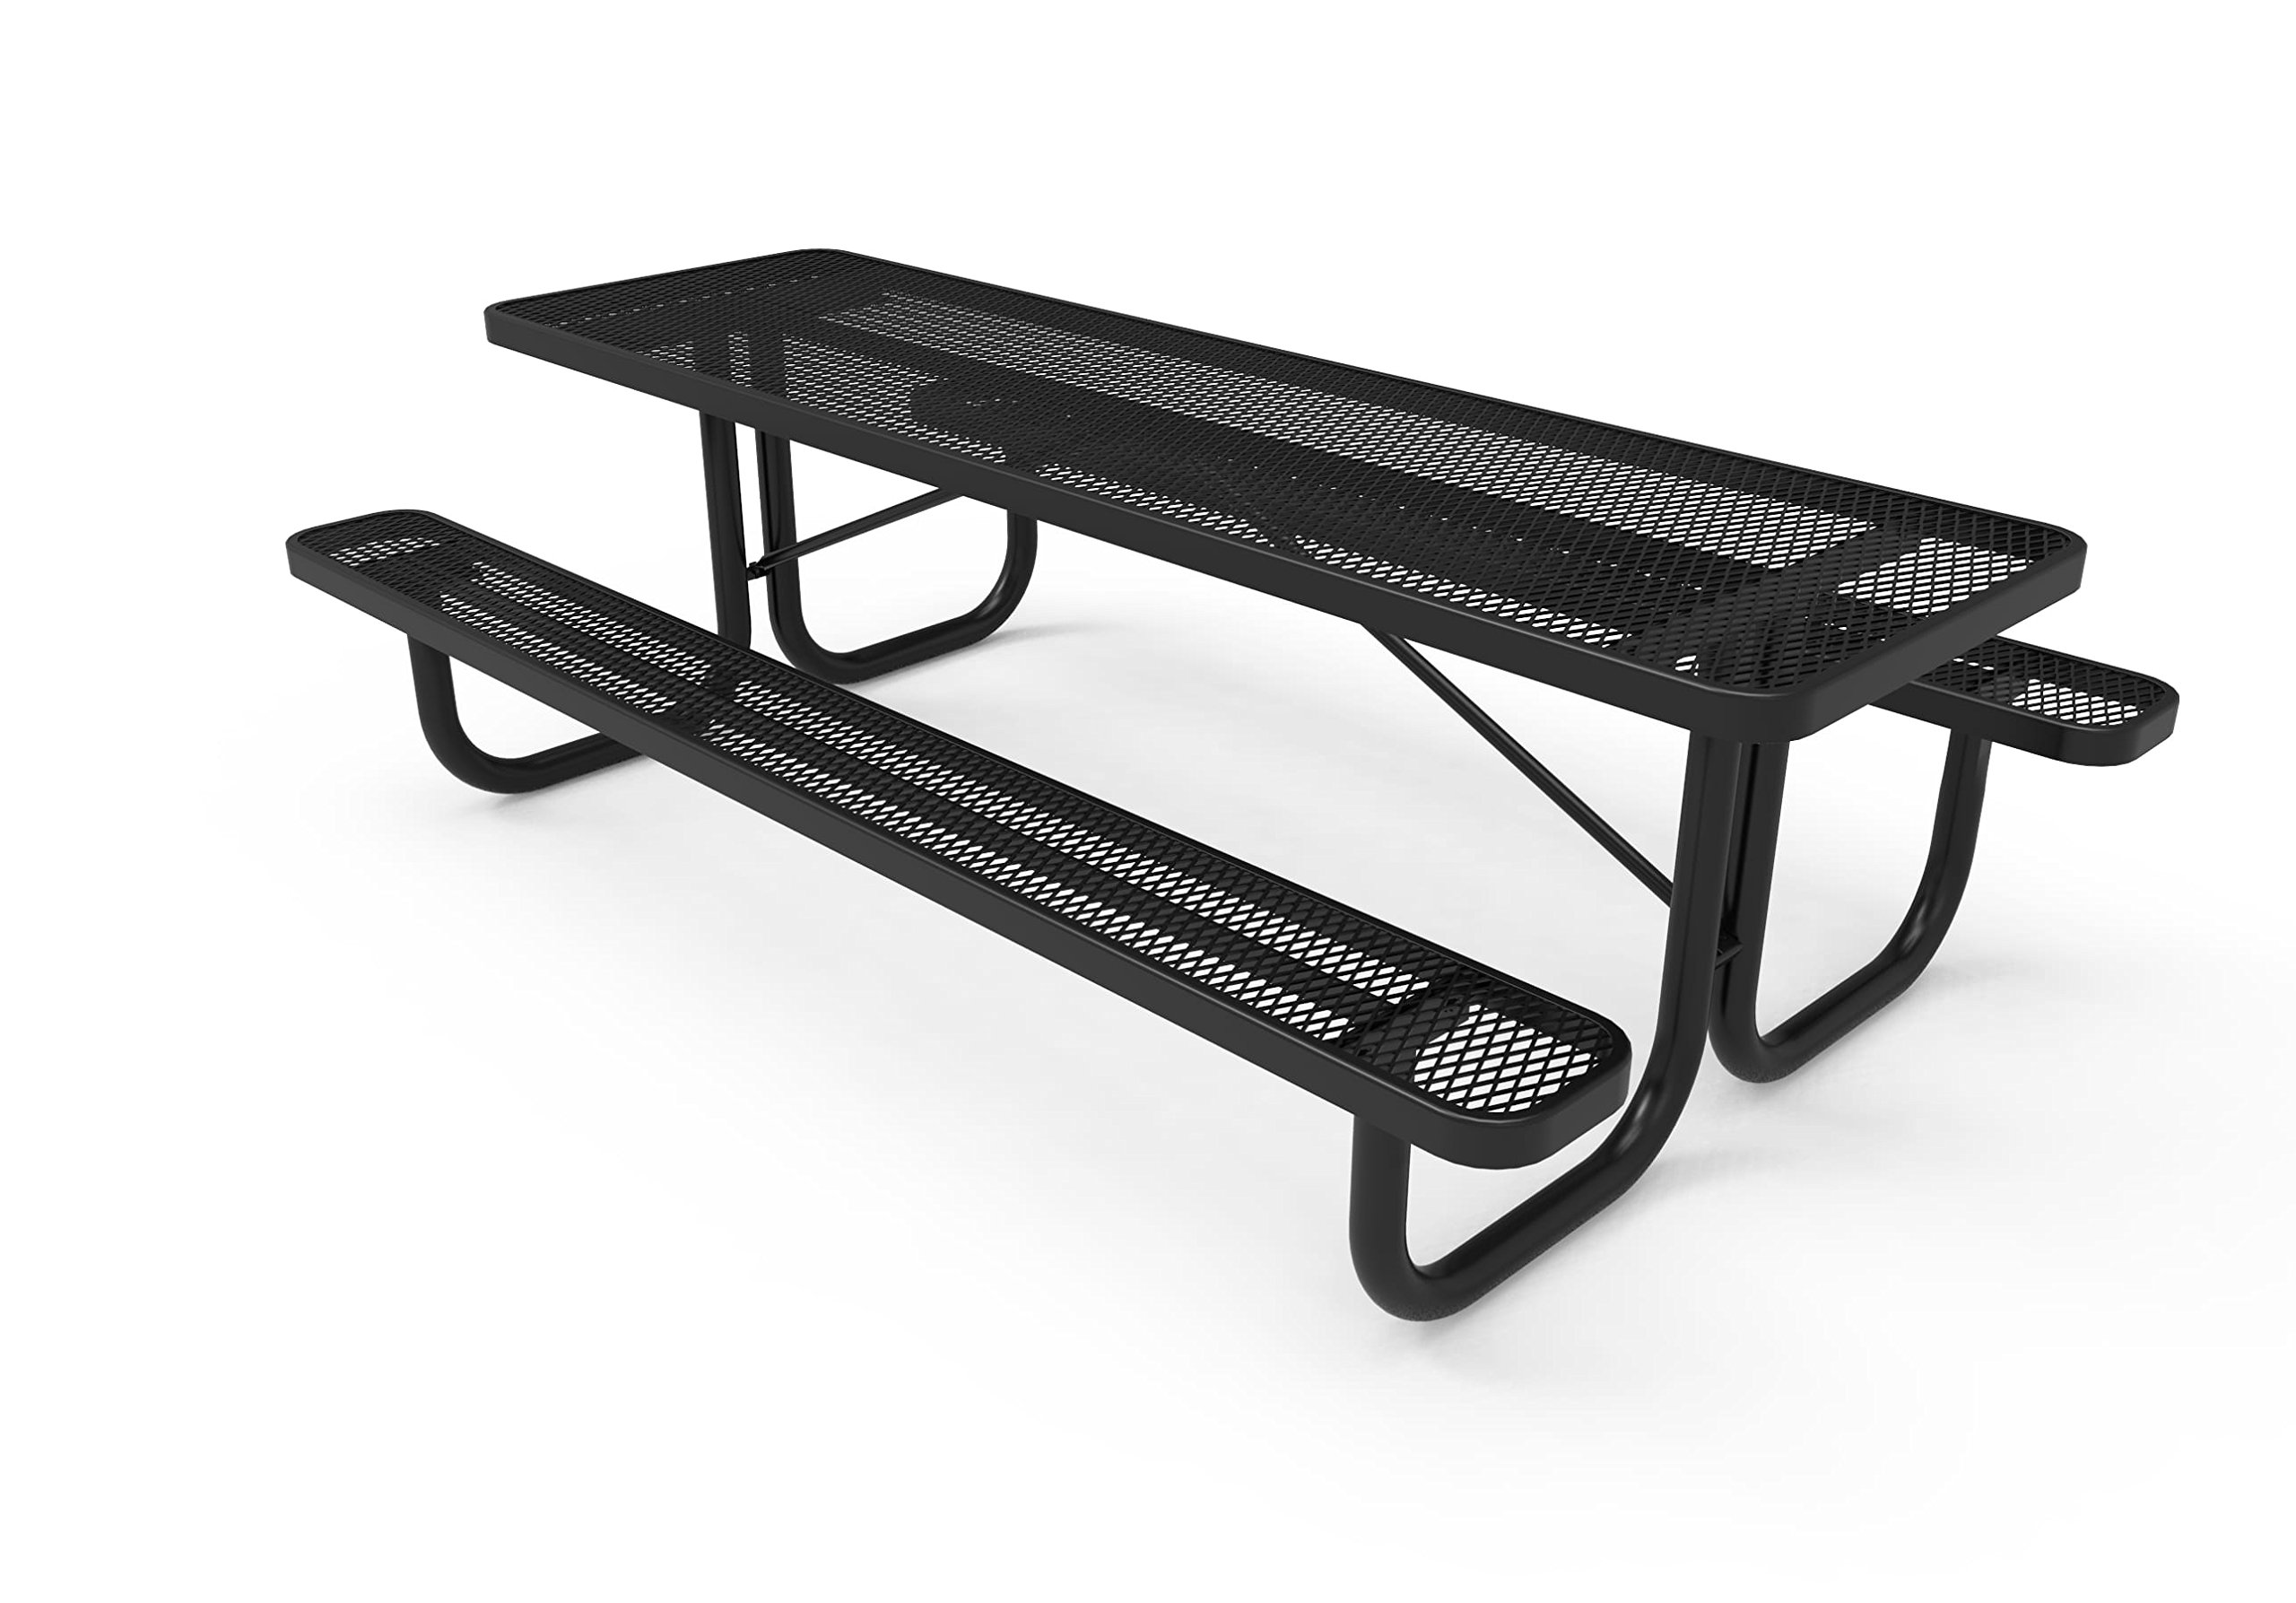 Coated Outdoor Furniture T8-BLK Rectangular Portable Picnic Table, 8 Feet, Black